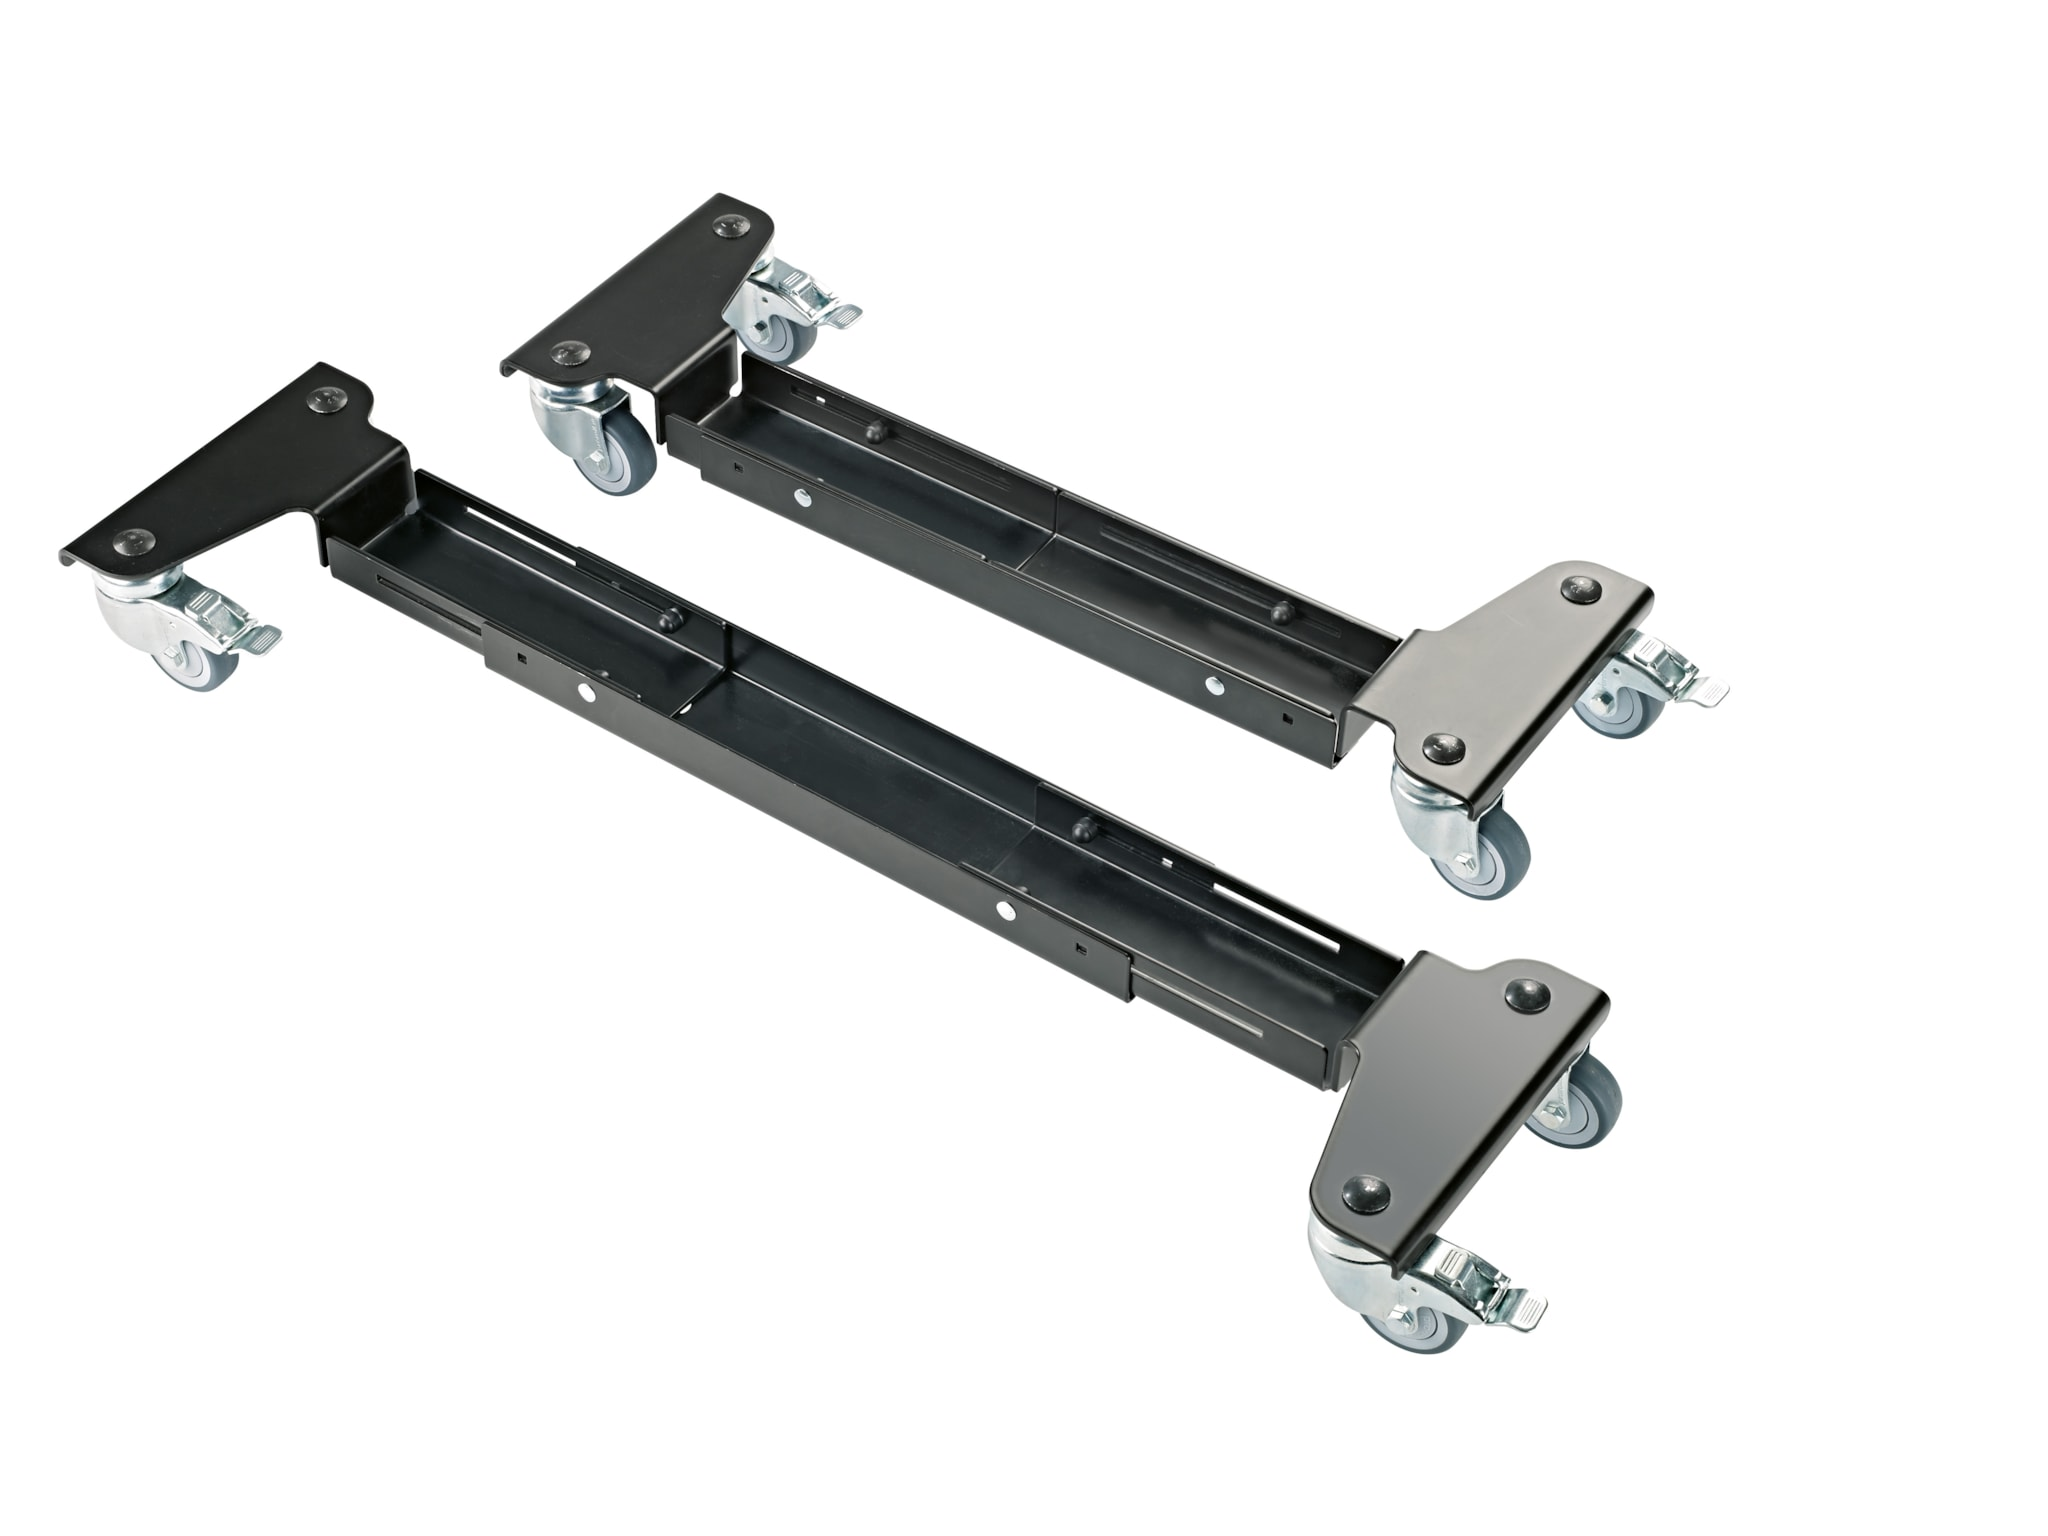 KM18806 - Trolley for Keyboard Stands